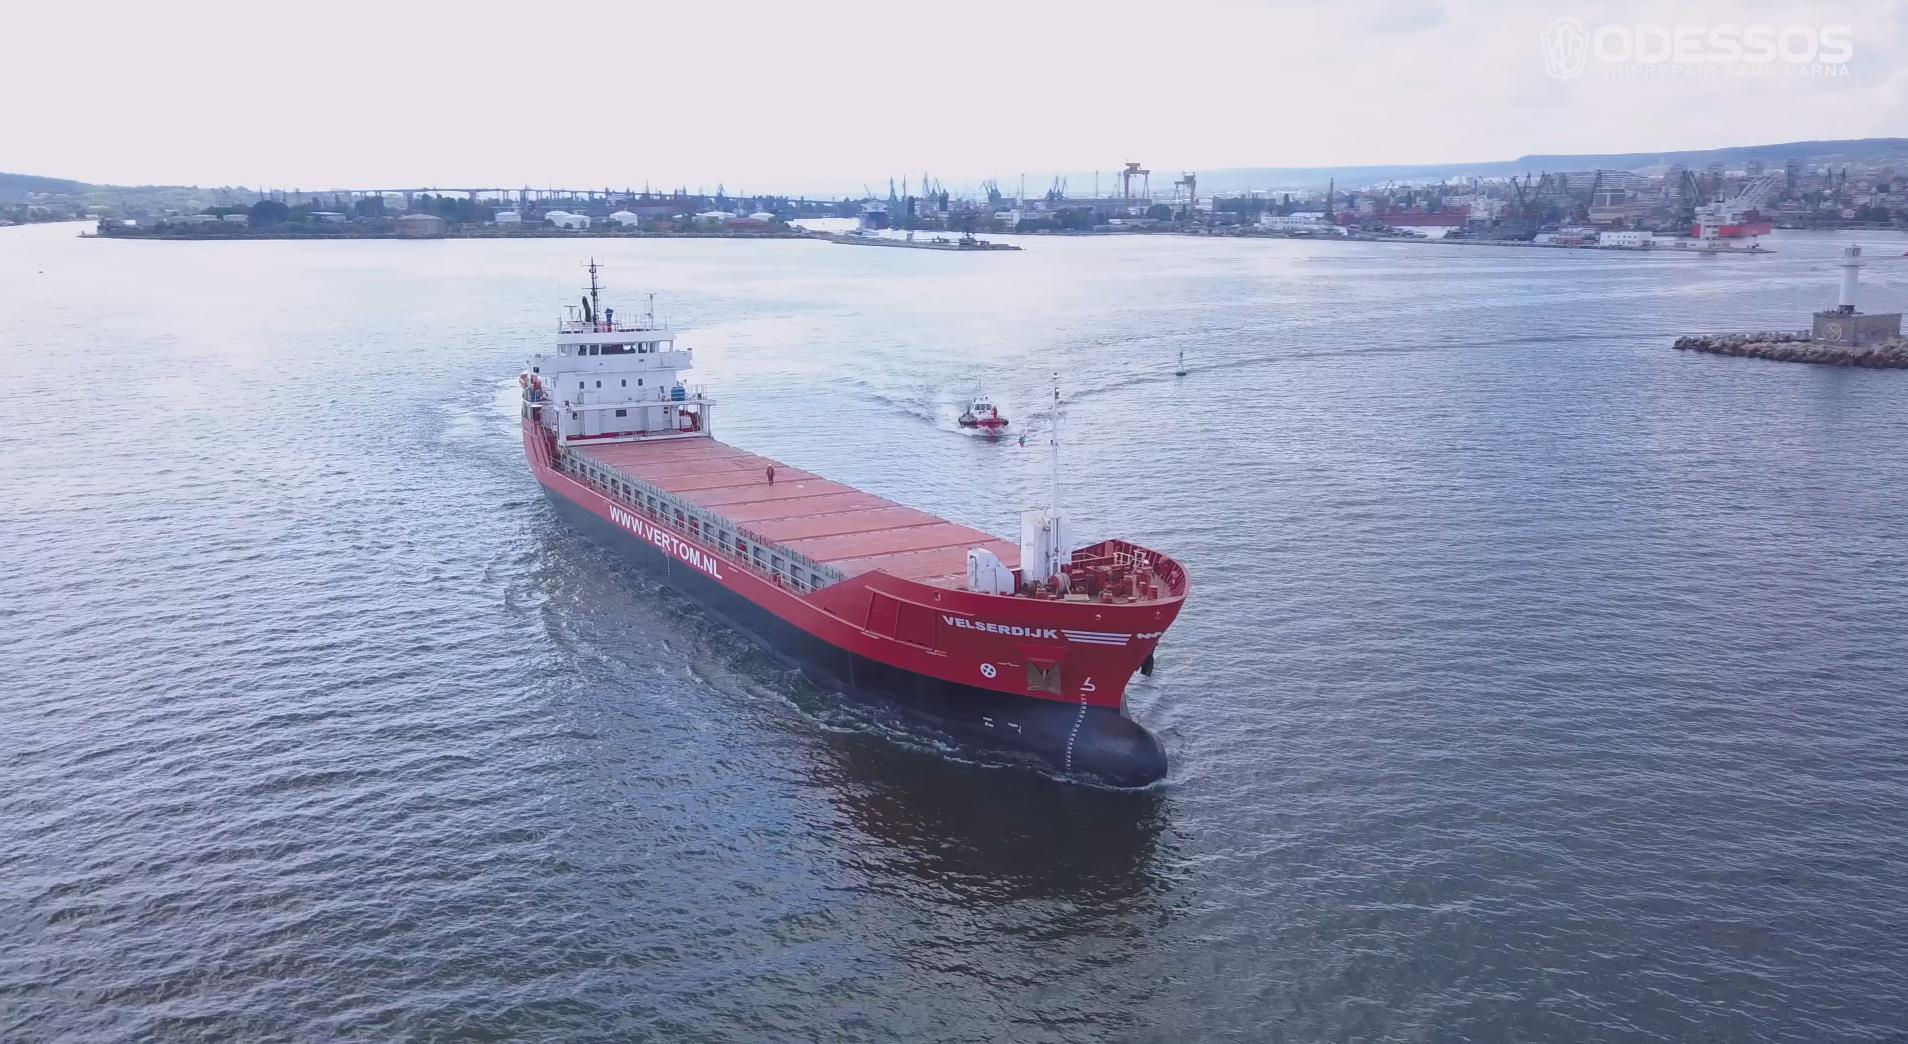 Photo credit: Shipping Company Groningen.